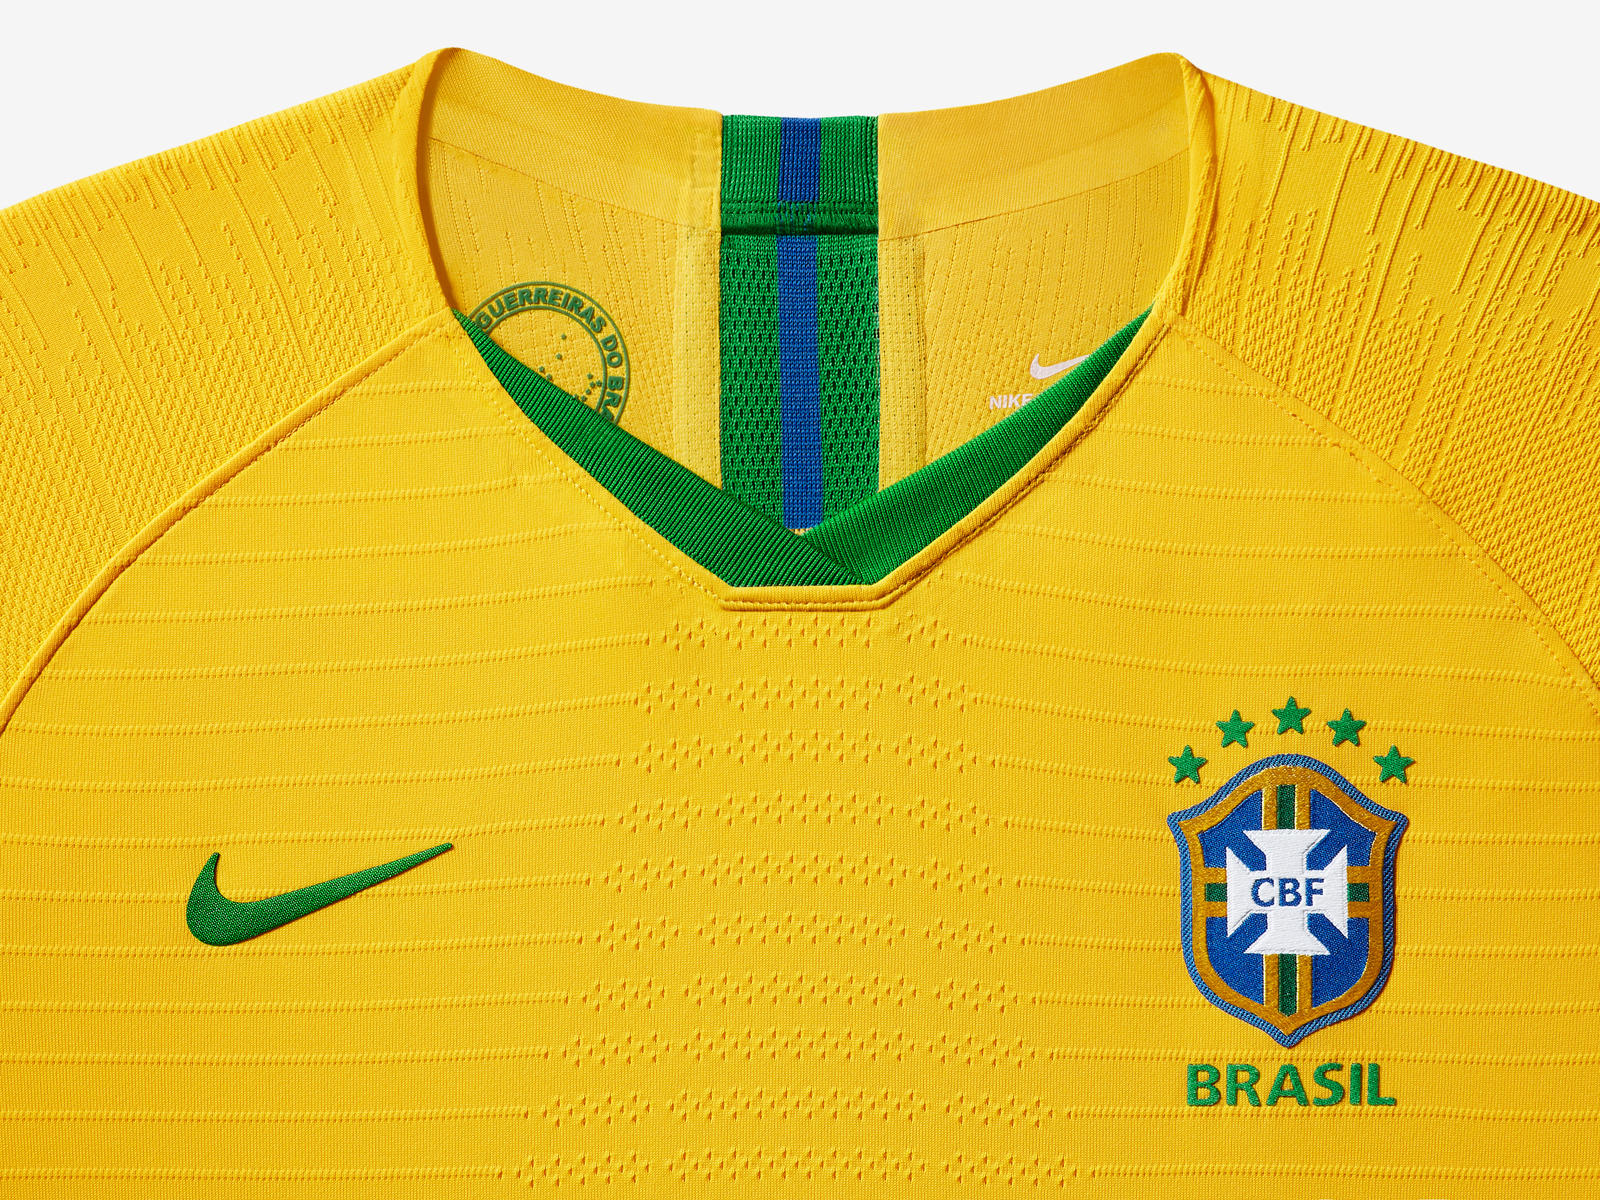 brasil-national-team-kit-2019-laydown-3_85910.jpg